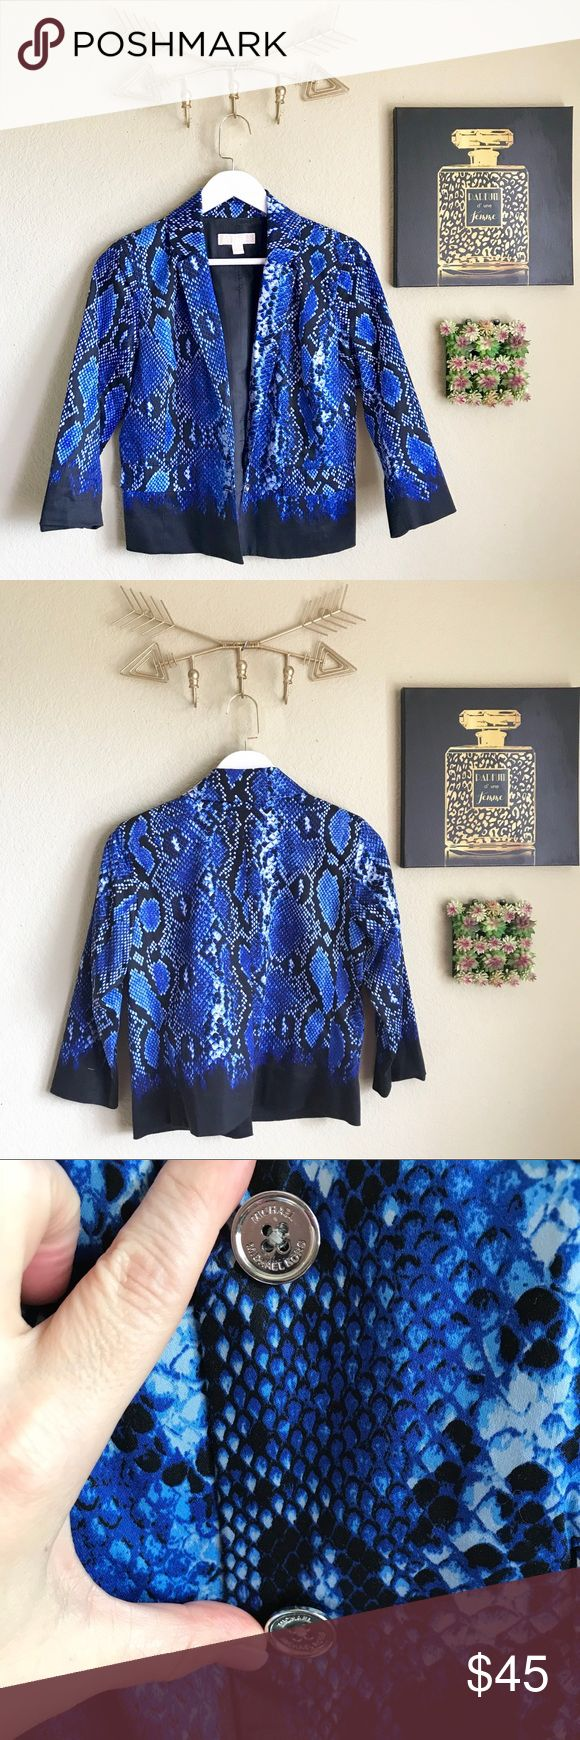 """Michael Kors Snake Blue Ombre Blazer Michael Kors Snake Blue Ombre Blazer Waist length Two button Size 2 Cotton/spandex 19"""" bust 22"""" long  Matching shirt sold separately.   thank you for looking and please check out the rest of my closet. MICHAEL Michael Kors Jackets & Coats Blazers"""